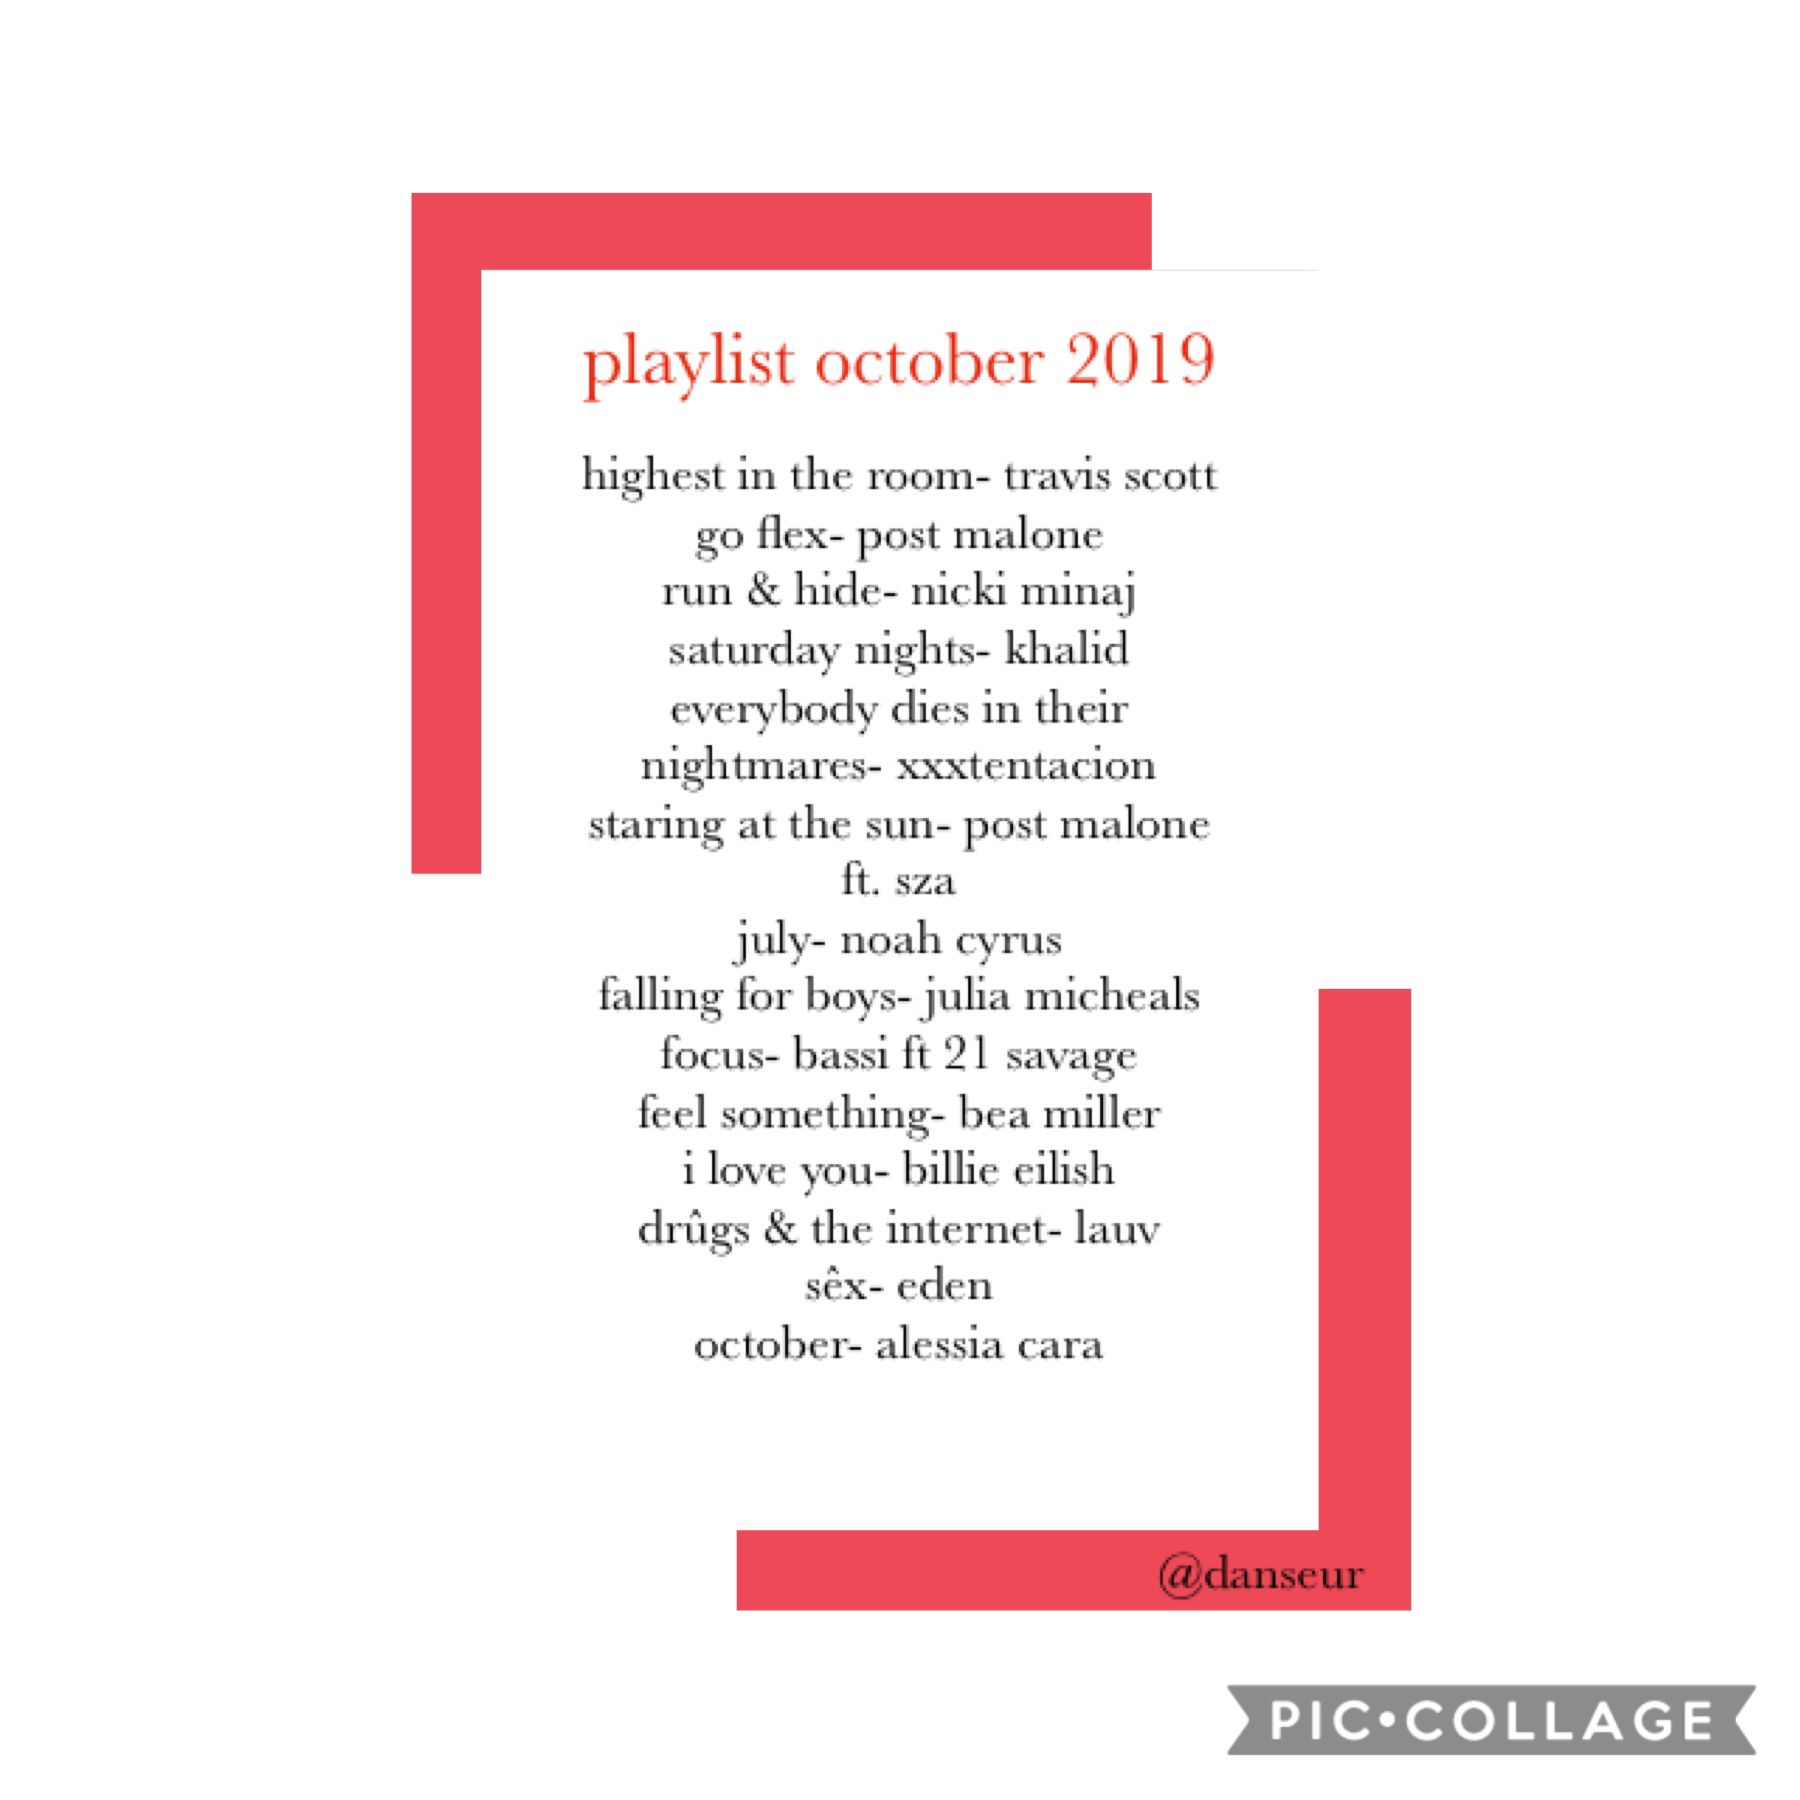 ❤️tap❤️ current playlist. drop some songs below and check these out too!💕 qotd: favourite song? atm and all time? aotd: atm: july- noah cyrus, all time: what a wonderful world- louis armstrong -danseur   [11/10/19]